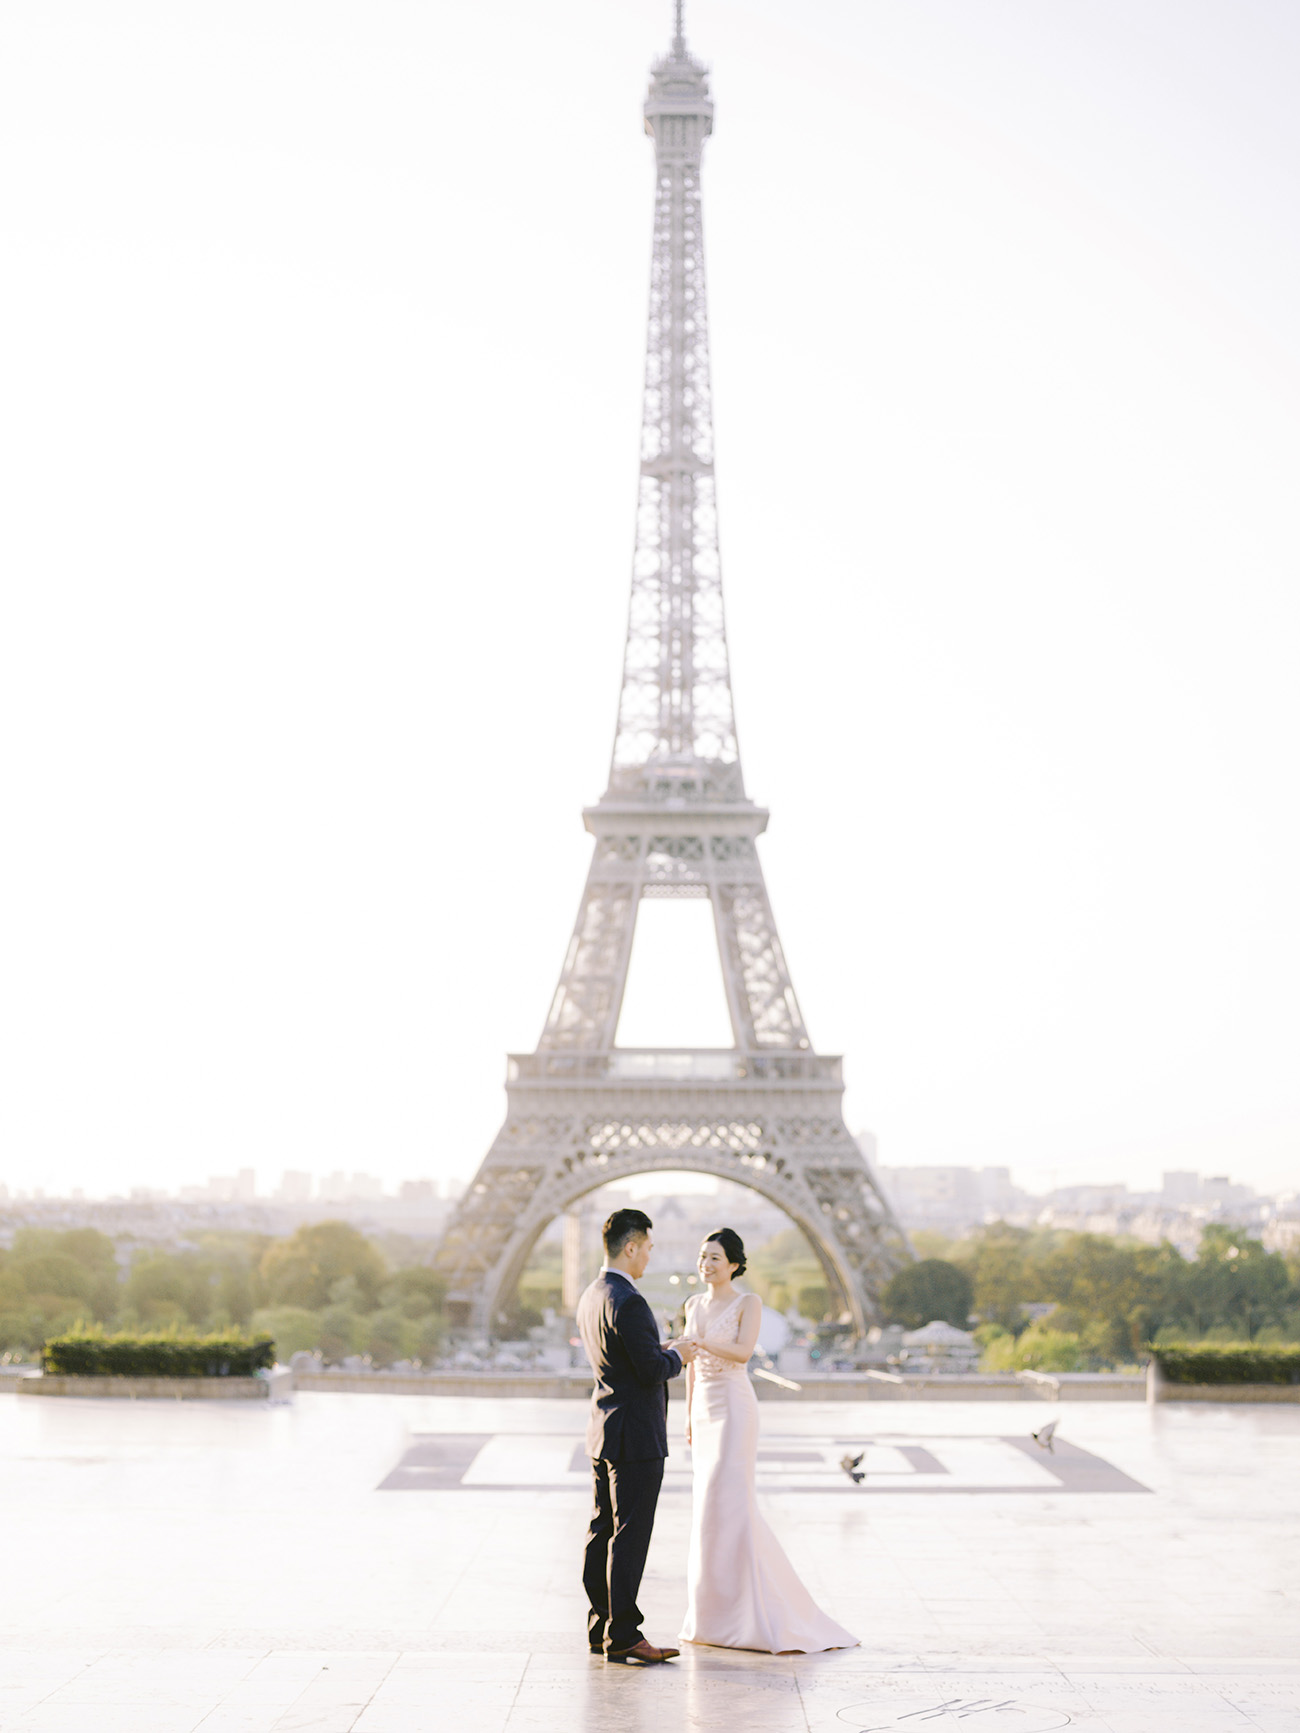 un couple face à la tour eiffel à paris